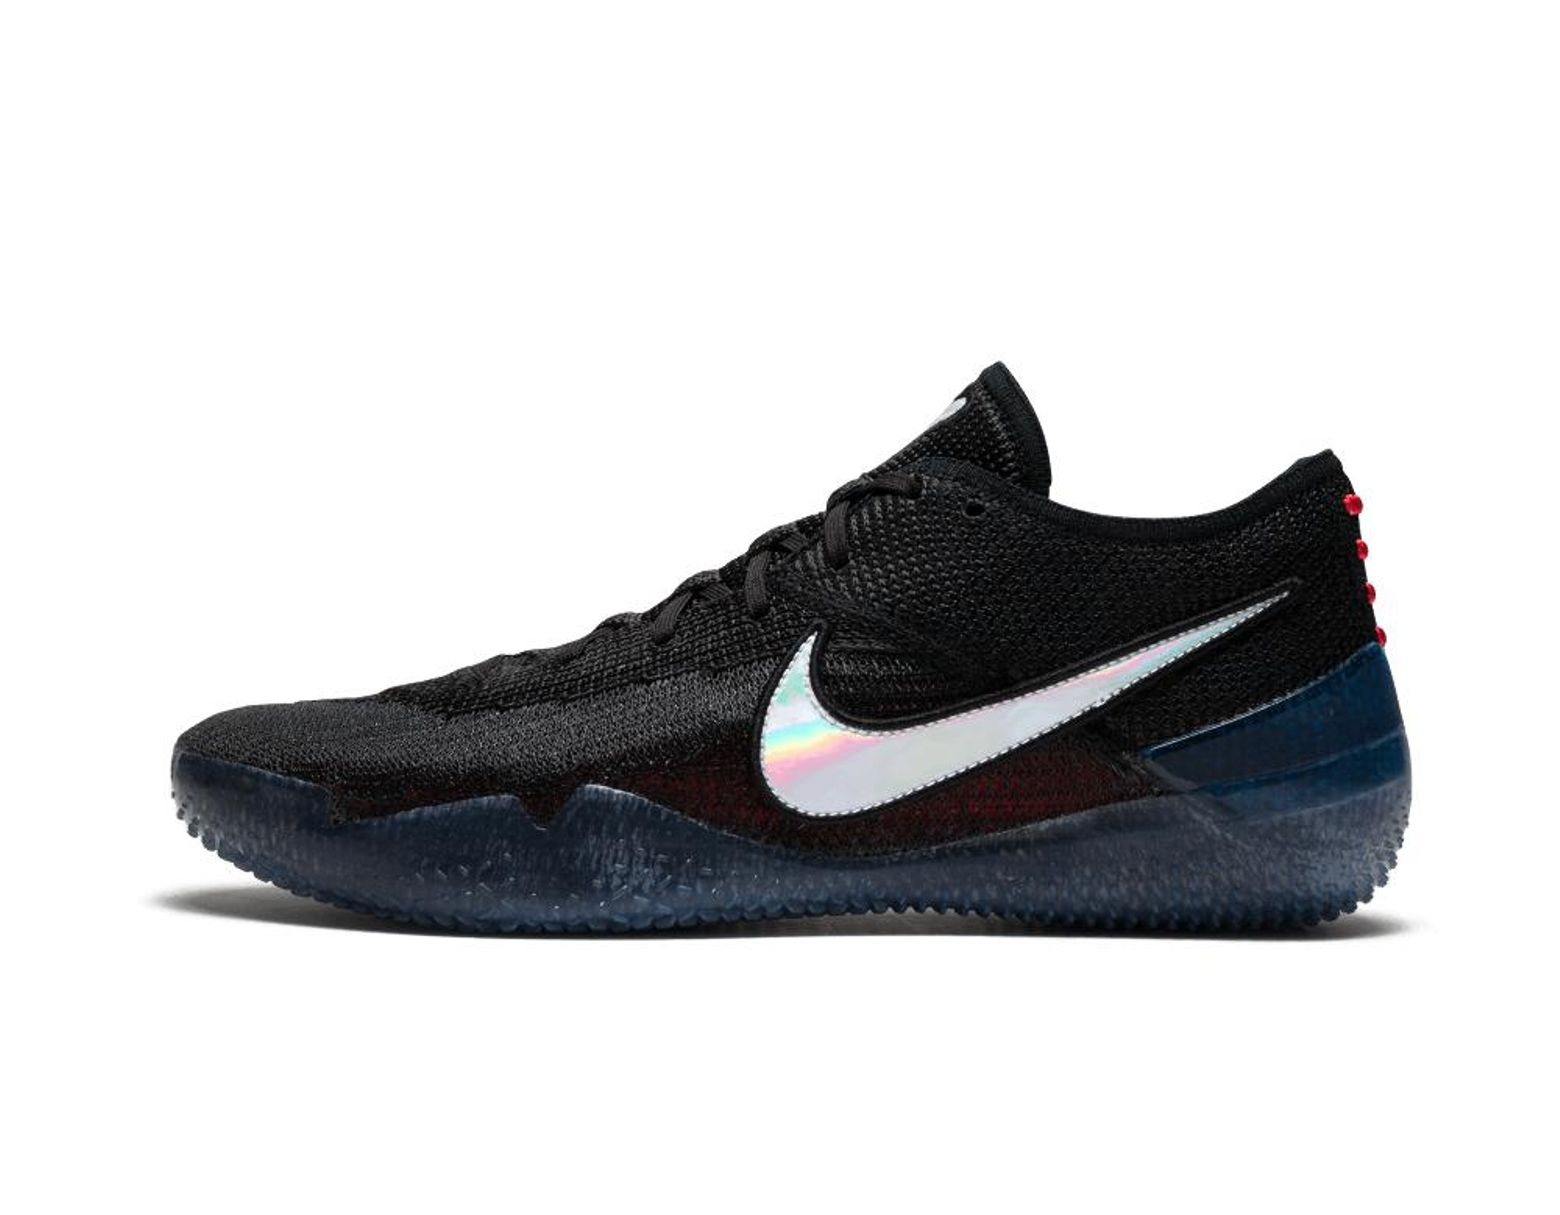 san francisco 0ce93 bd6d0 Nike Kobe Ad Nxt 360 in Black for Men - Save 20% - Lyst